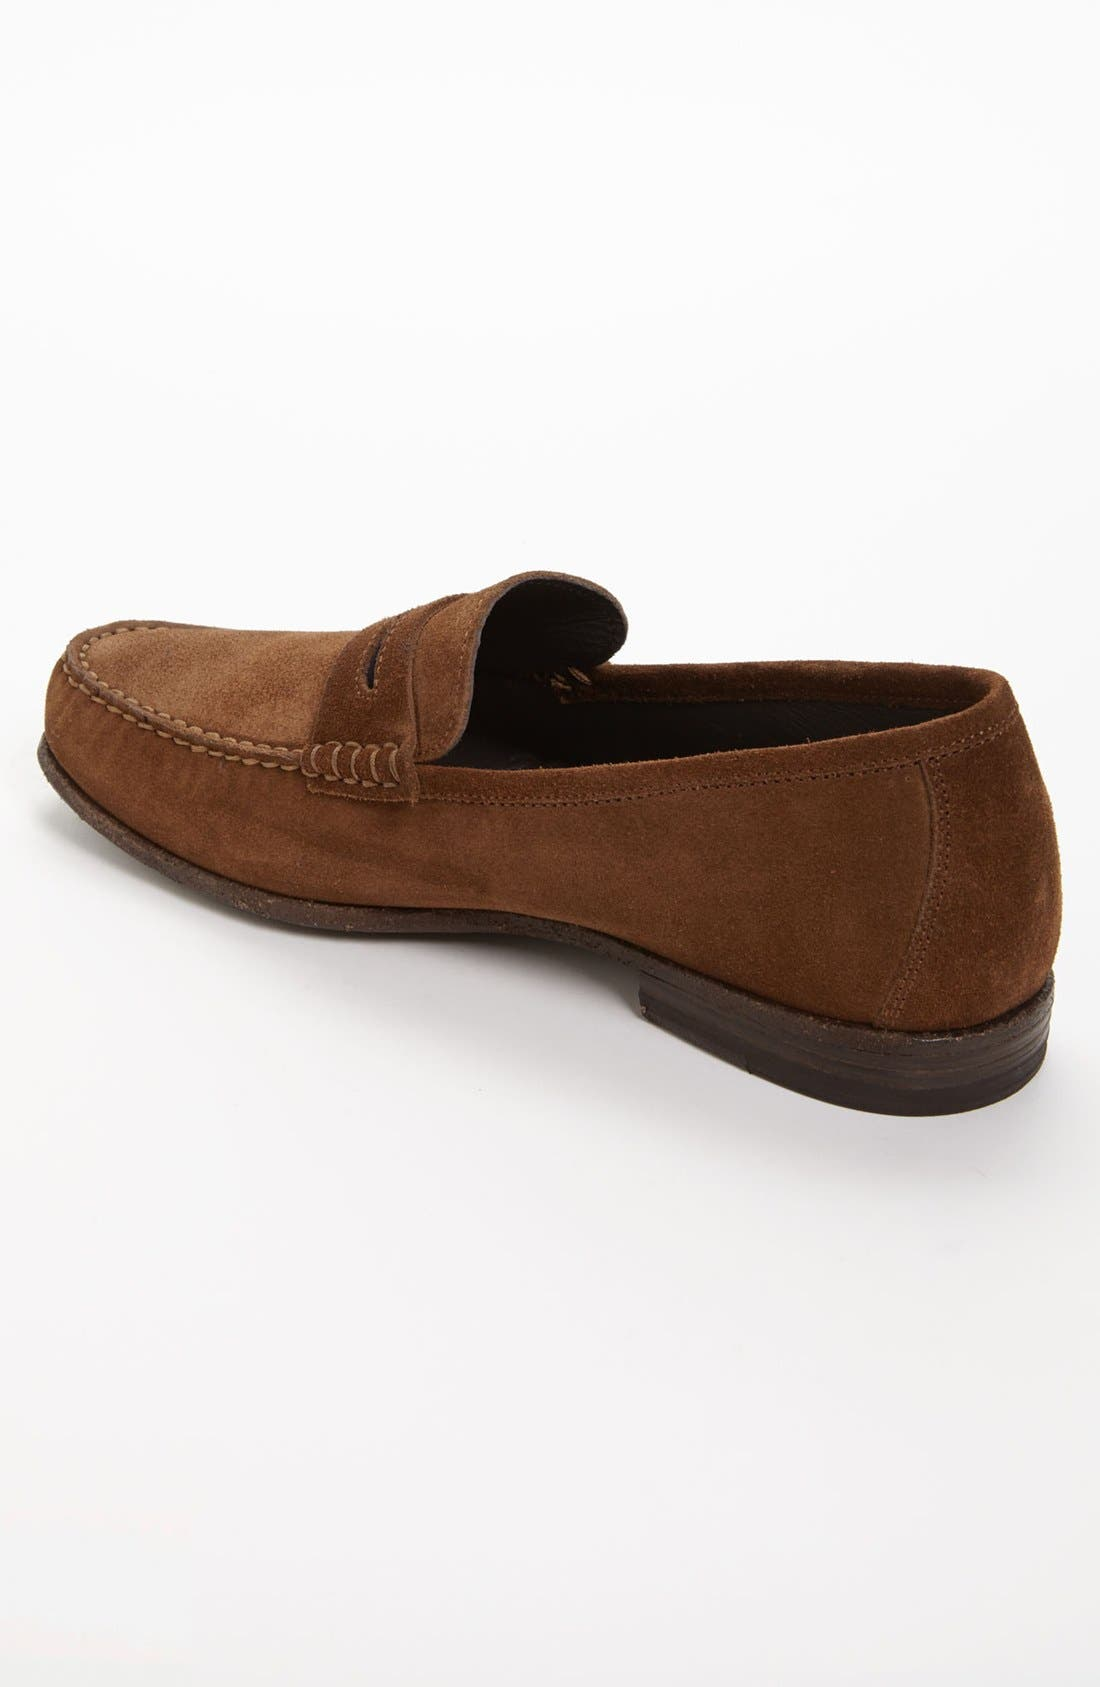 Alternate Image 2  - To Boot New York 'Wilson' Suede Penny Loafer